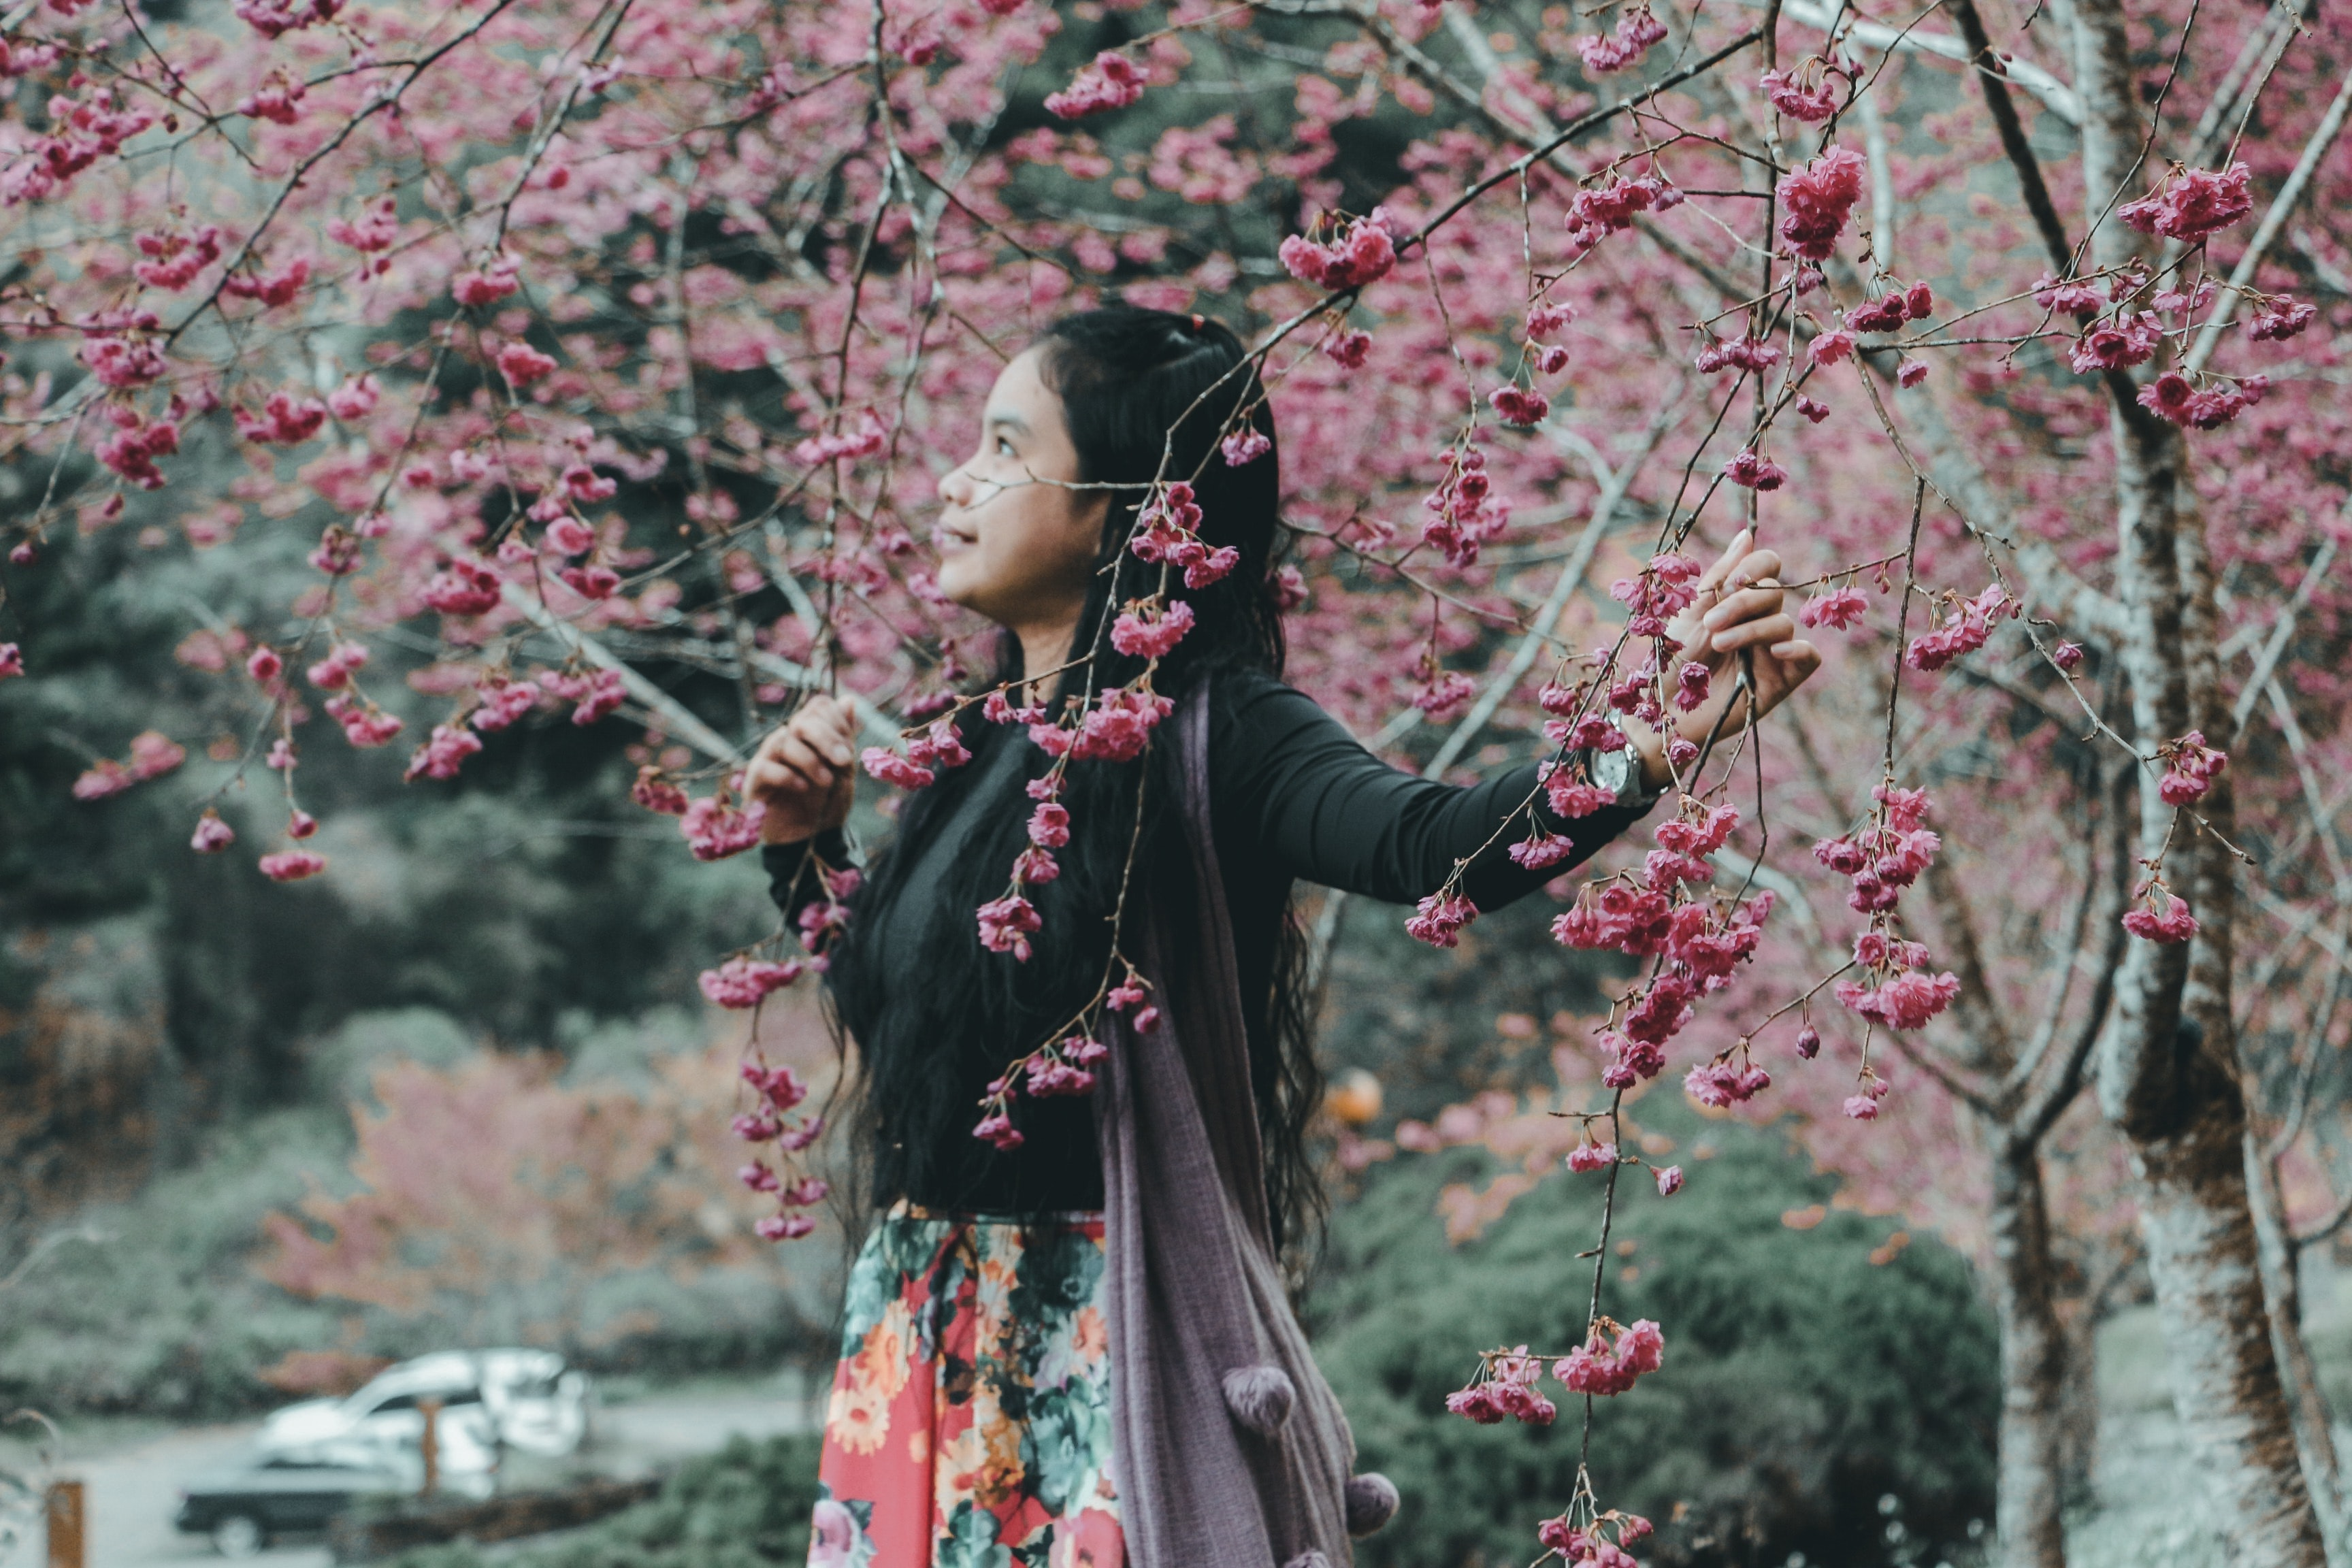 woman standing under the pink cherry blossom tree at daytime